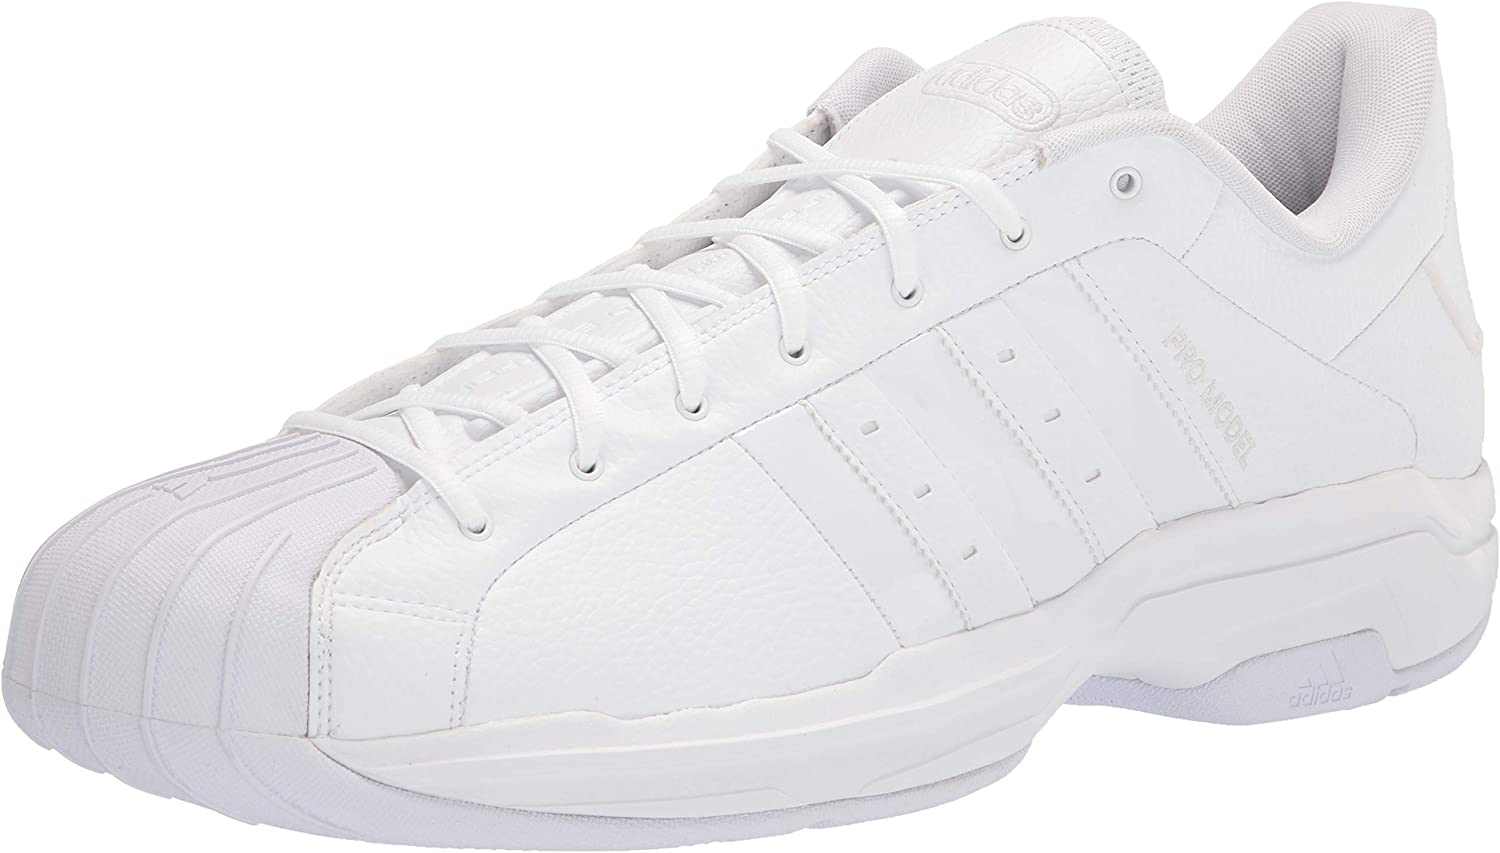 adidas Men's OFFicial shop Pro Super special price Model Basketball Shoe 2g Low